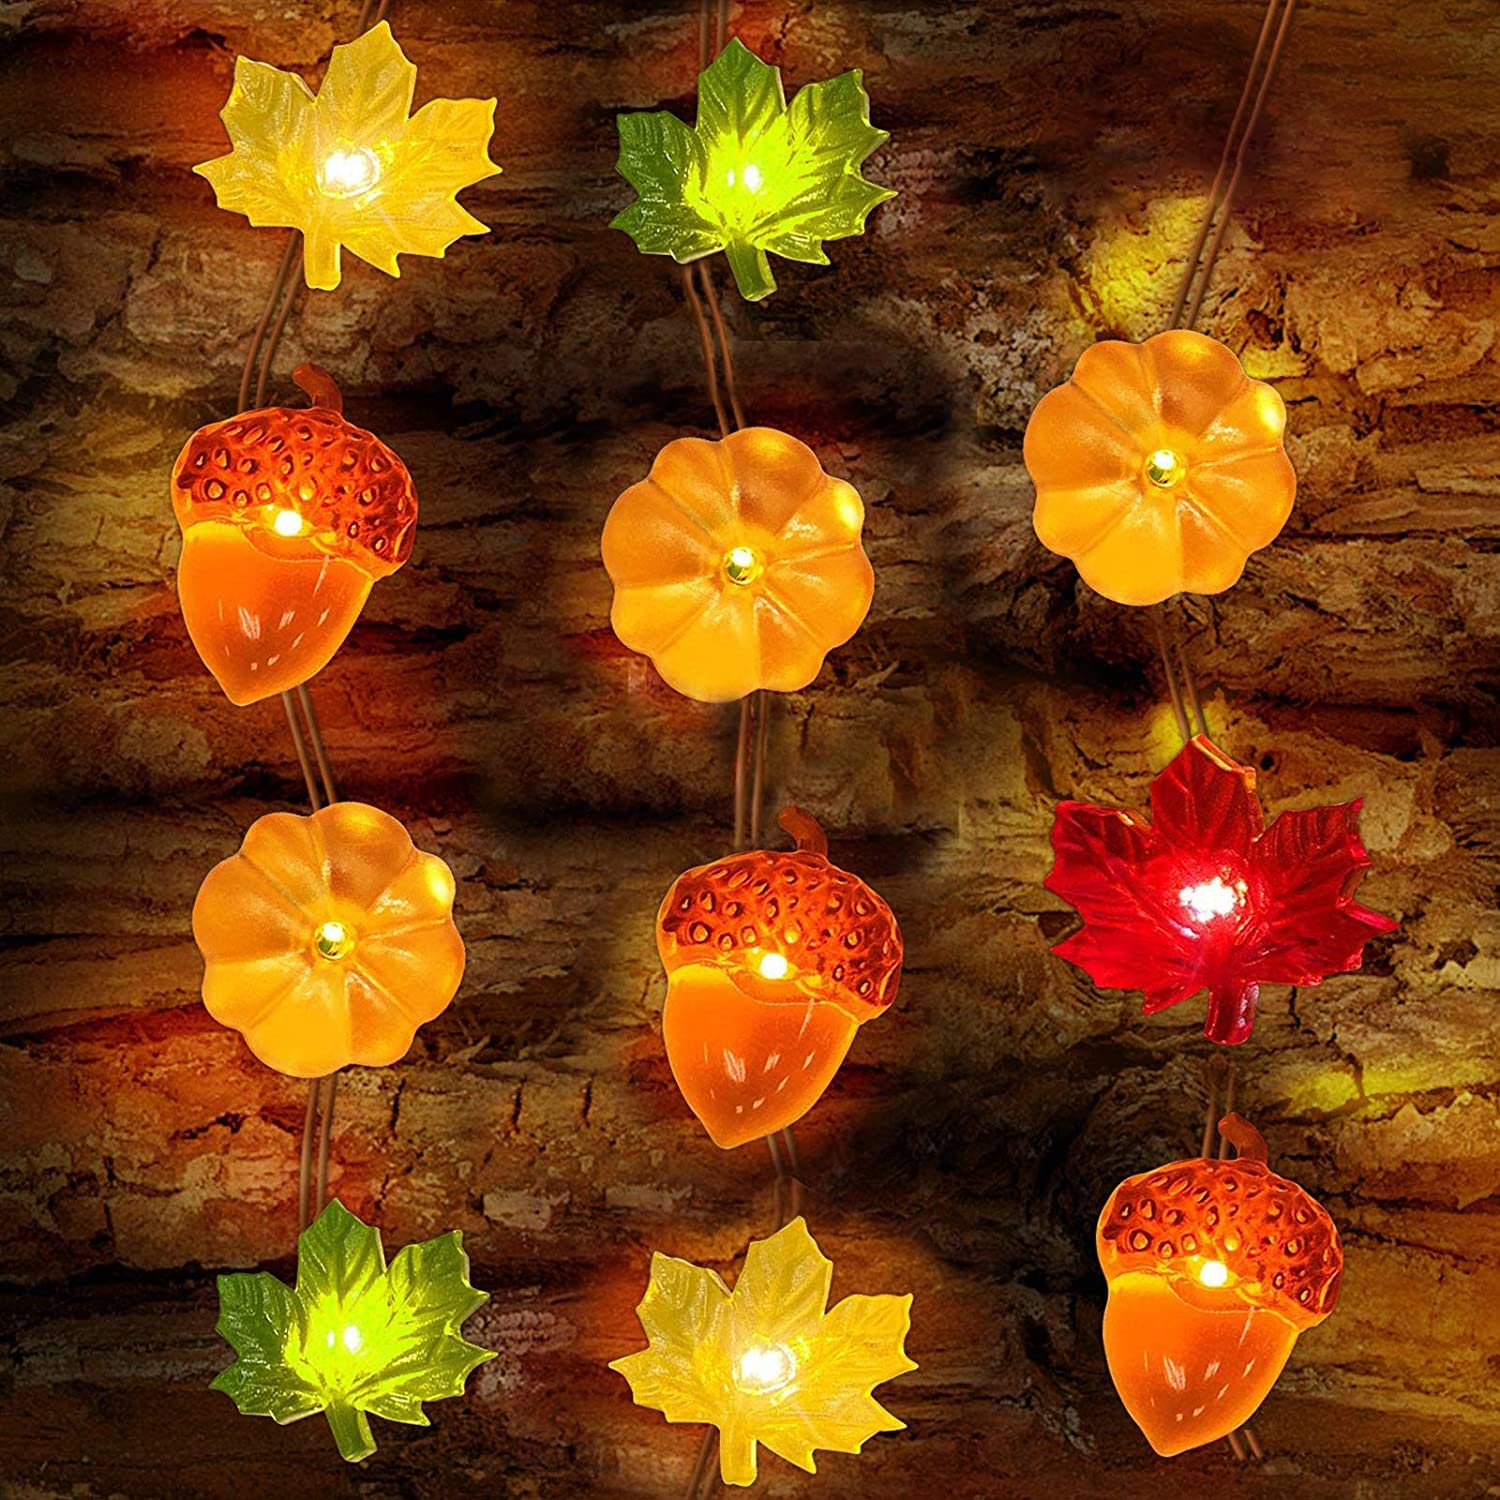 3D Pumpkin Acorn Maple Leaf String Lights, 10ft 30LEDs Battery Powered Fall String Lights for Halloween Fall Autumn Thanksgiving Christmas Fall Garland Indoor Outdoor Decorations Home Party